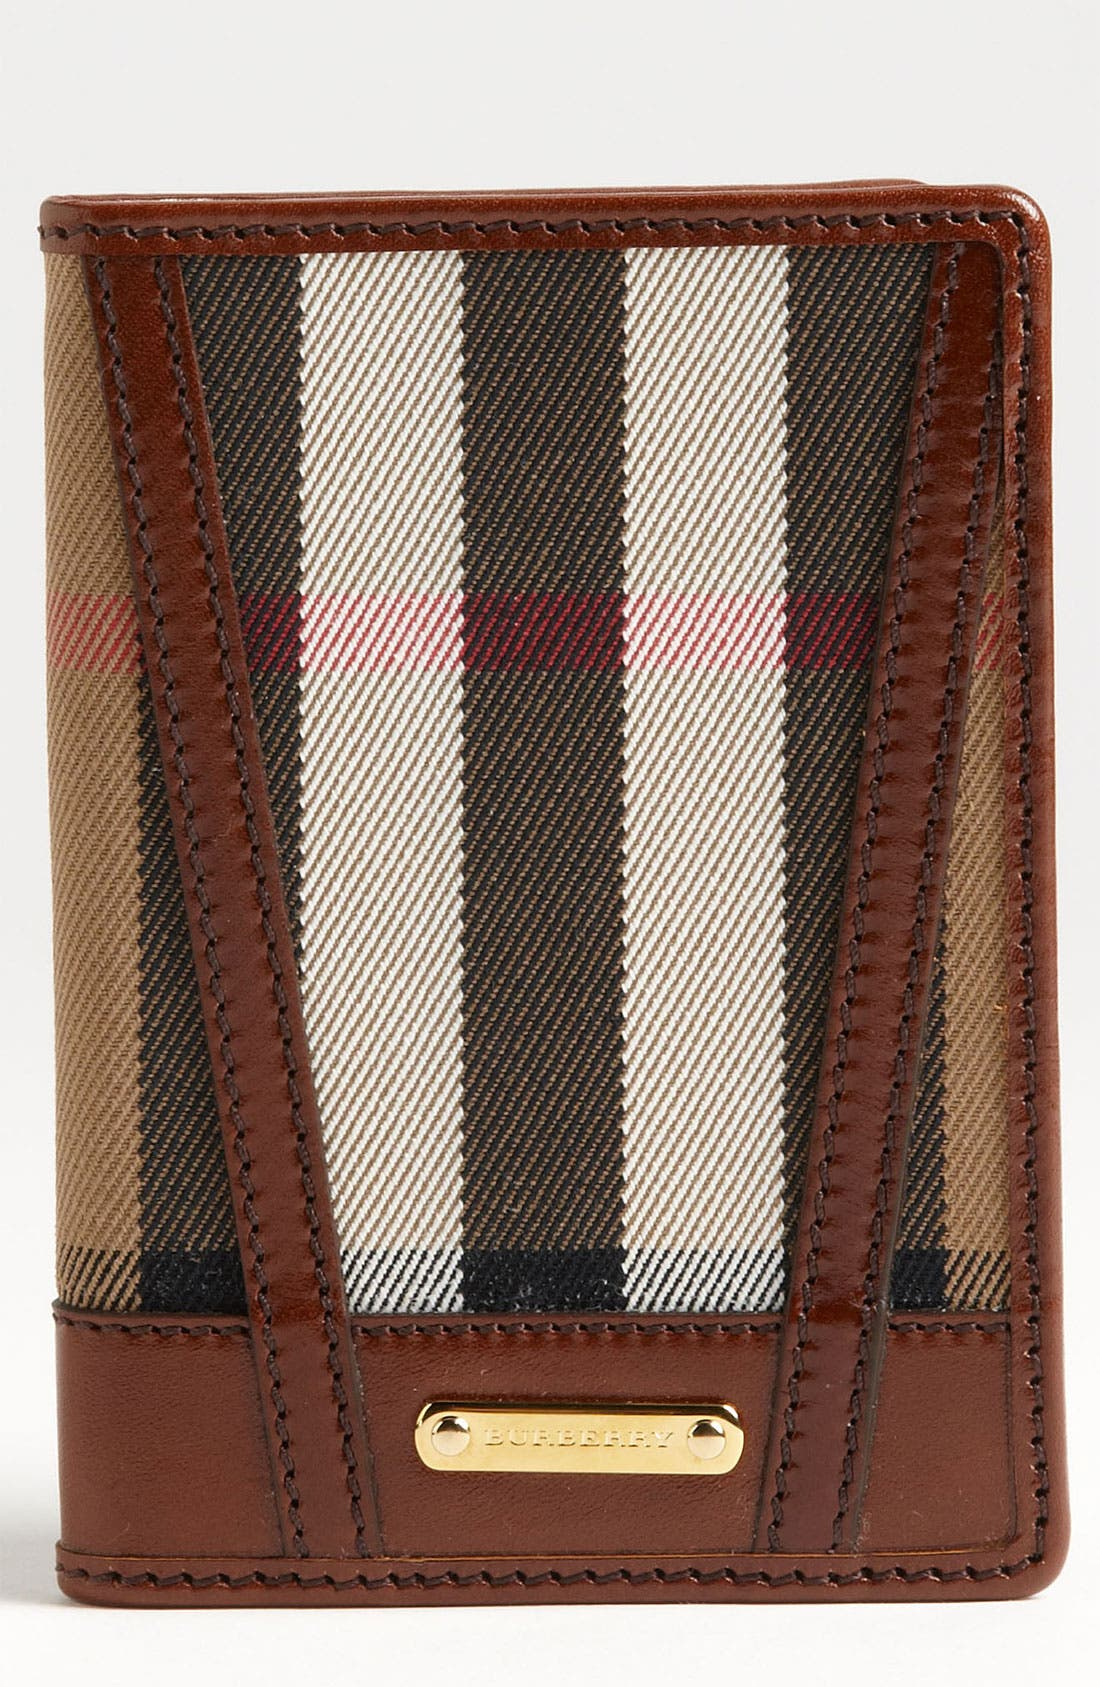 Main Image - Burberry 'House Check' Passport Wallet